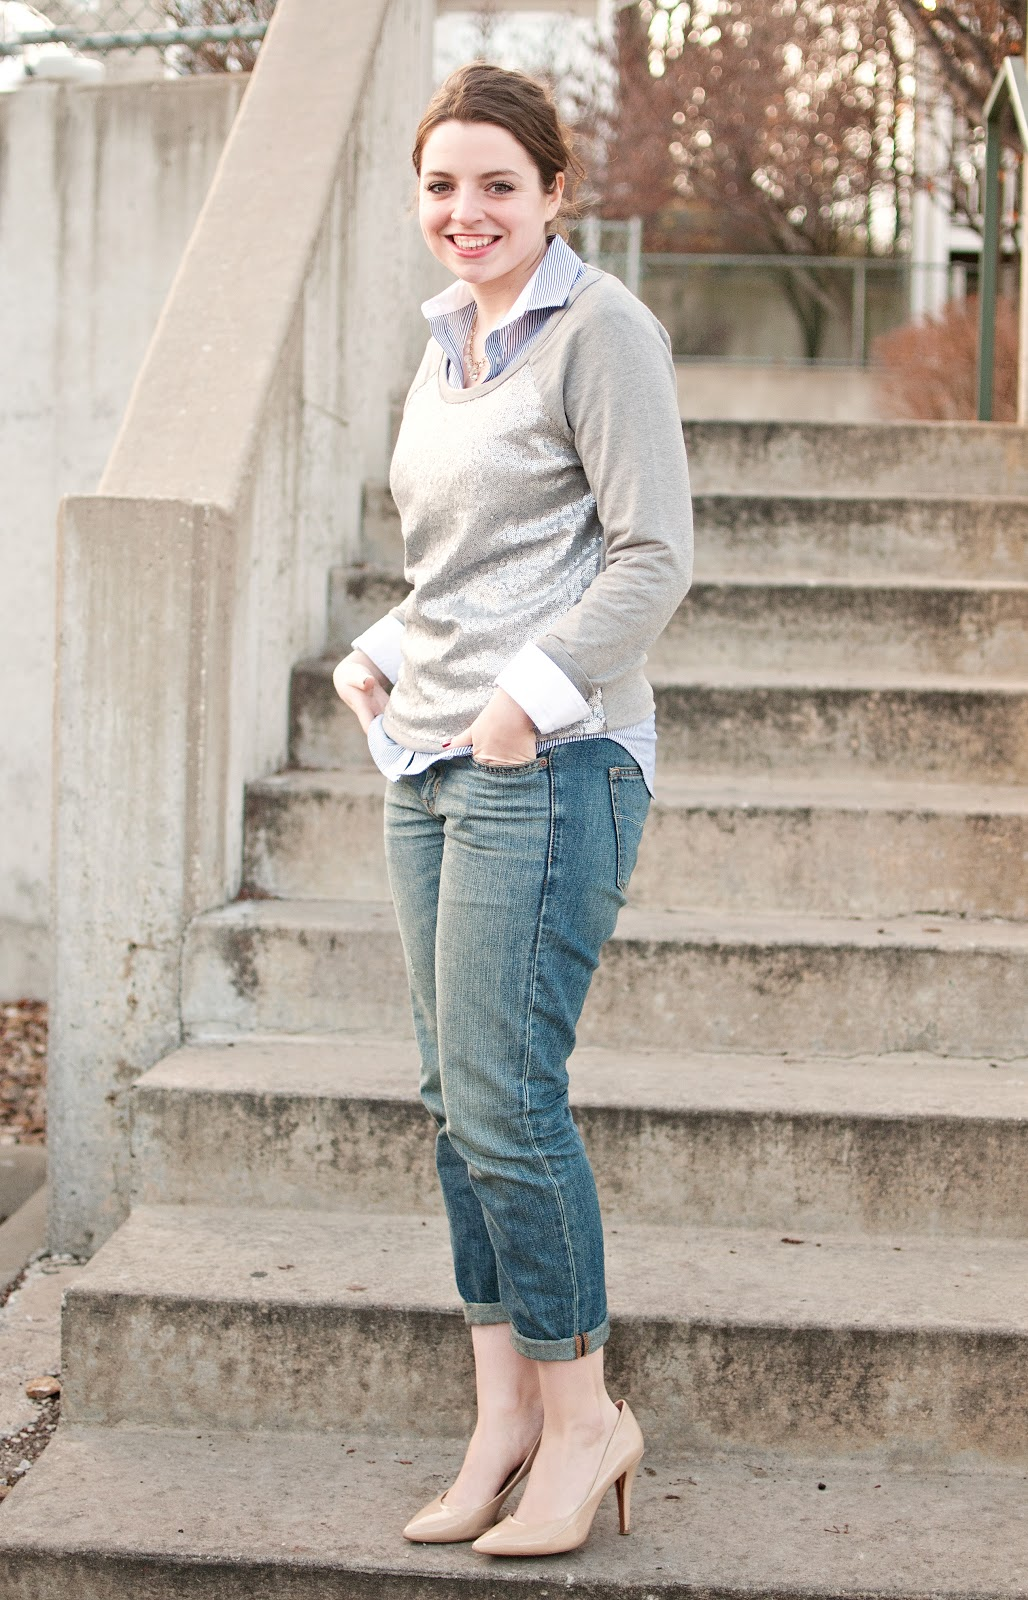 Sequin Sweatshirt with Boyfriend Jeans and Heels